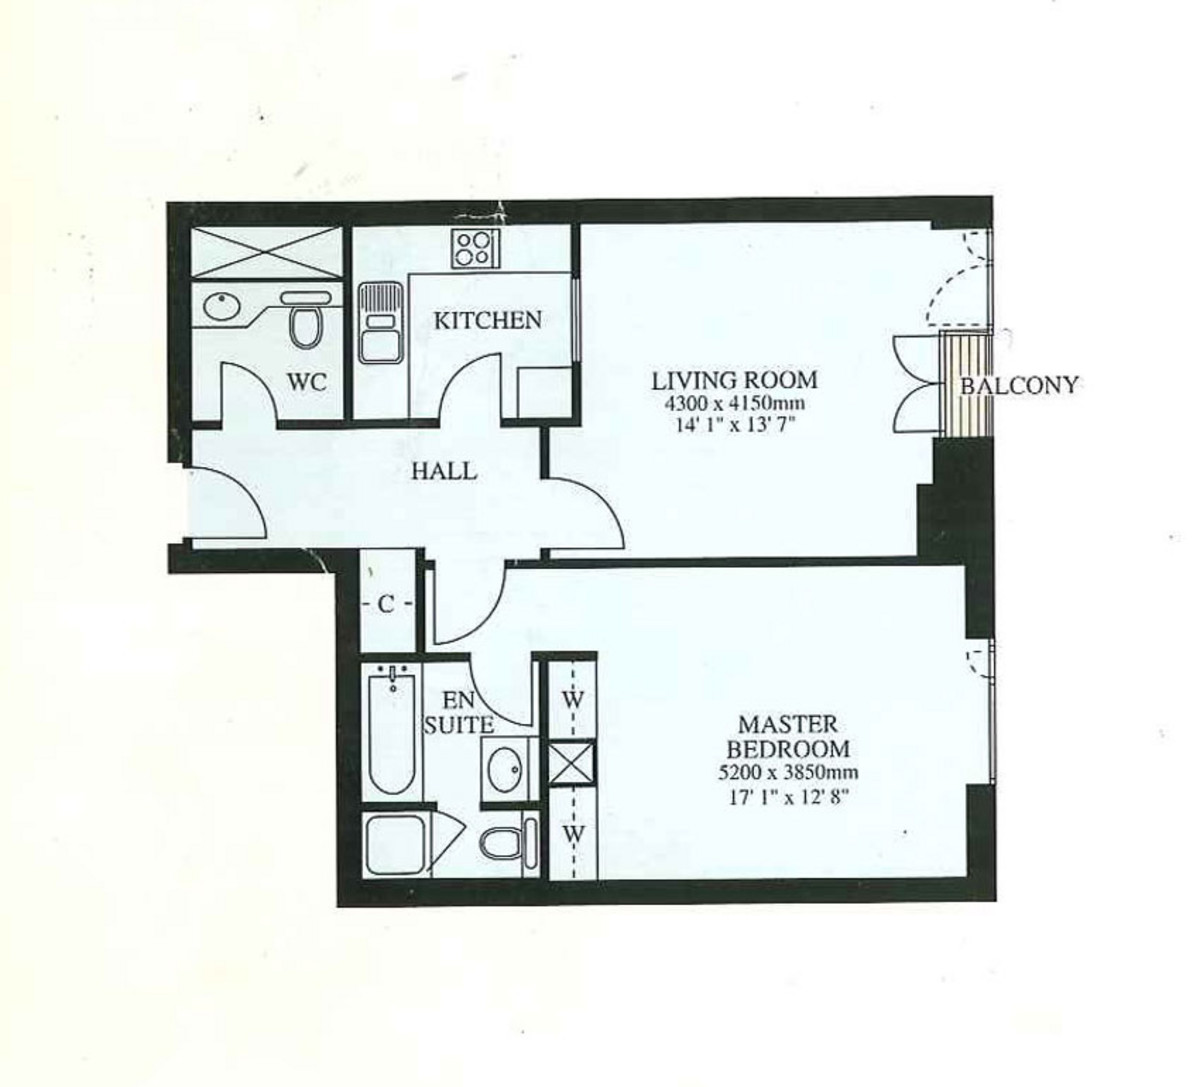 Eaton House, Canary Wharf, London, E14 Floorplan